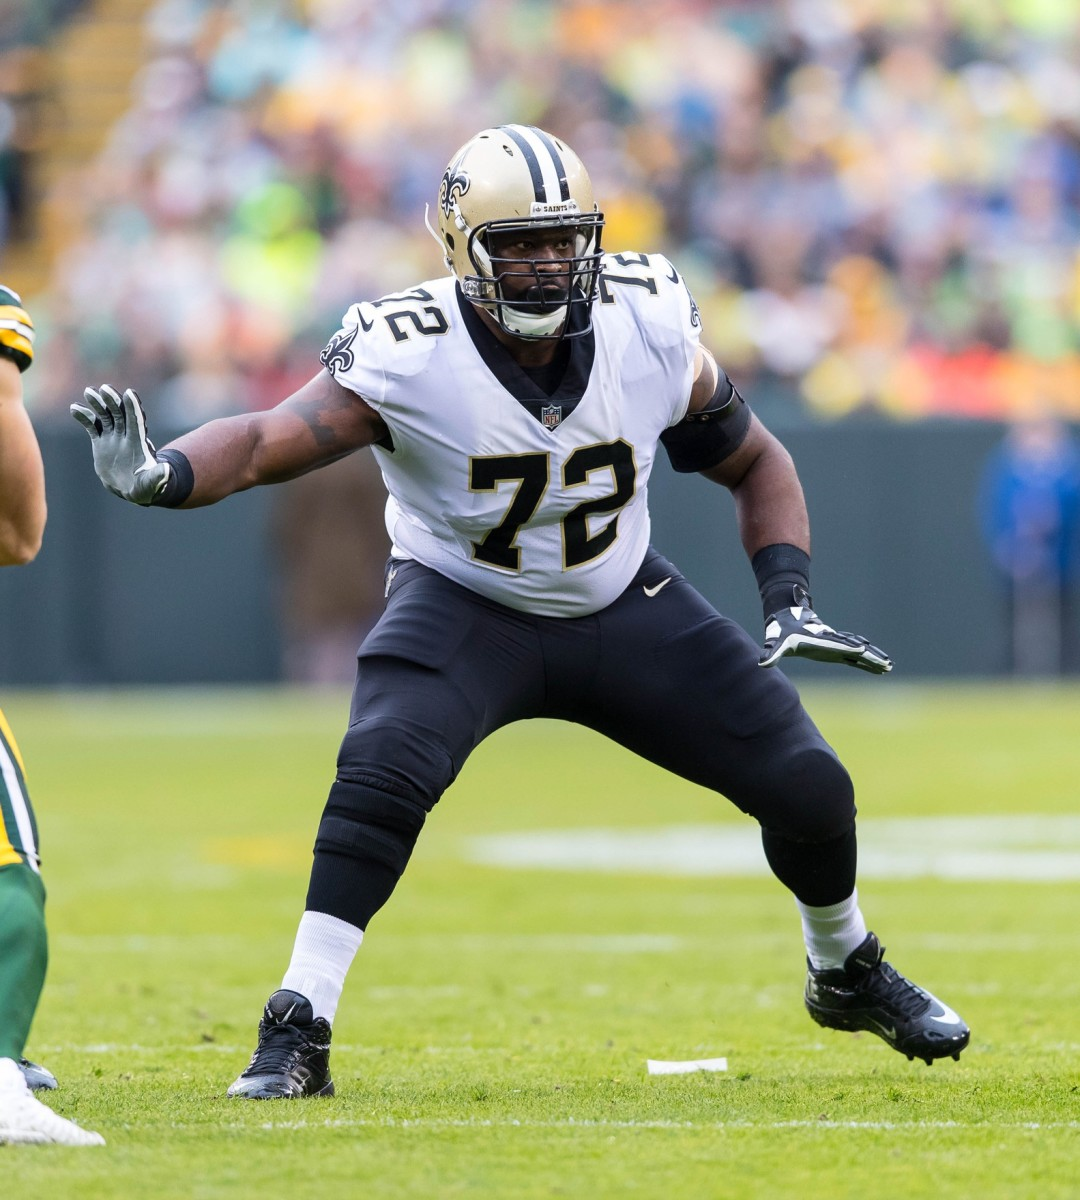 Oct 22, 2017; Green Bay, WI, USA; New Orleans Saints offensive tackle Terron Armstead (72) against the Green Bay Packers at Lambeau Field. Mandatory Credit: Jeff Hanisch-USA TODAY